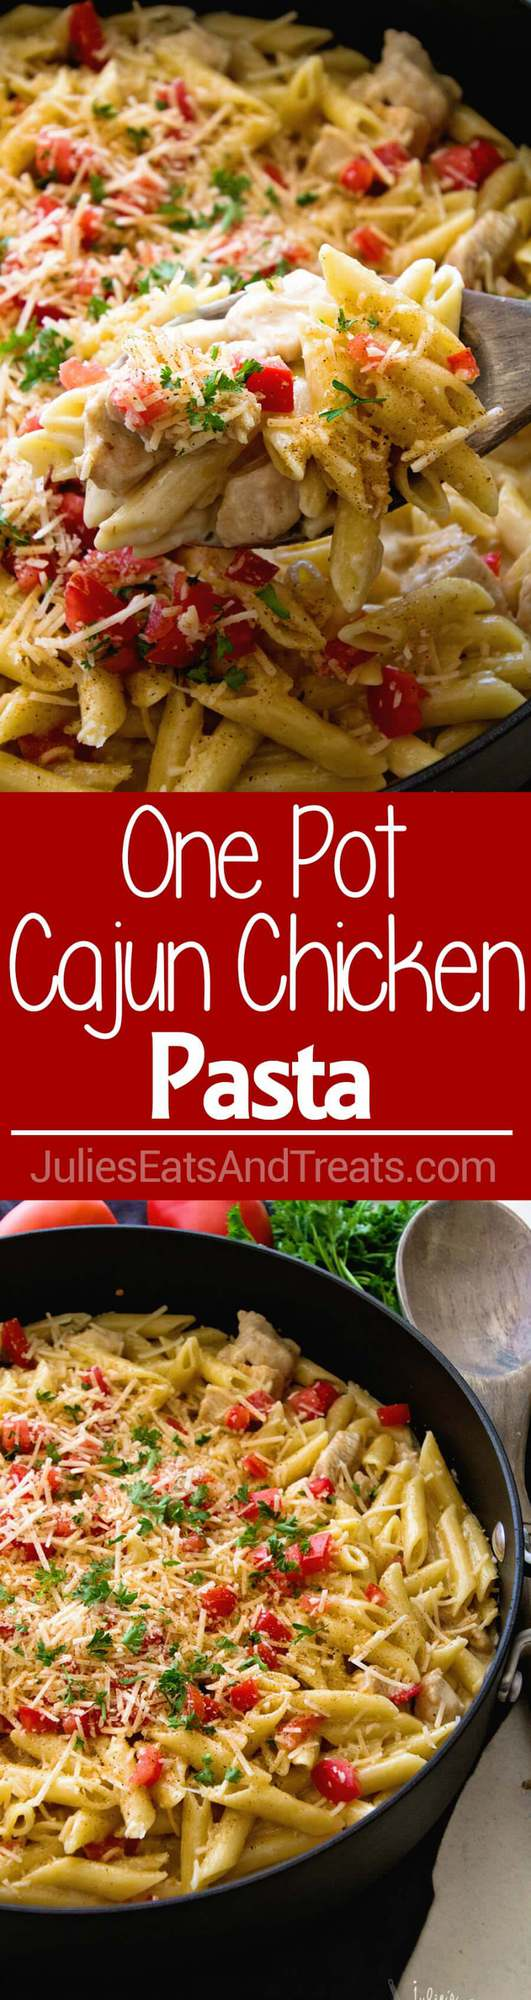 One Pot Cajun Chicken Pasta ~ Creamy Pasta Sauce with Chicken, Cheese and the Perfect Amount of Cajun Spice! Easy Dinner Recipe That's Better Than a Restaurant's!